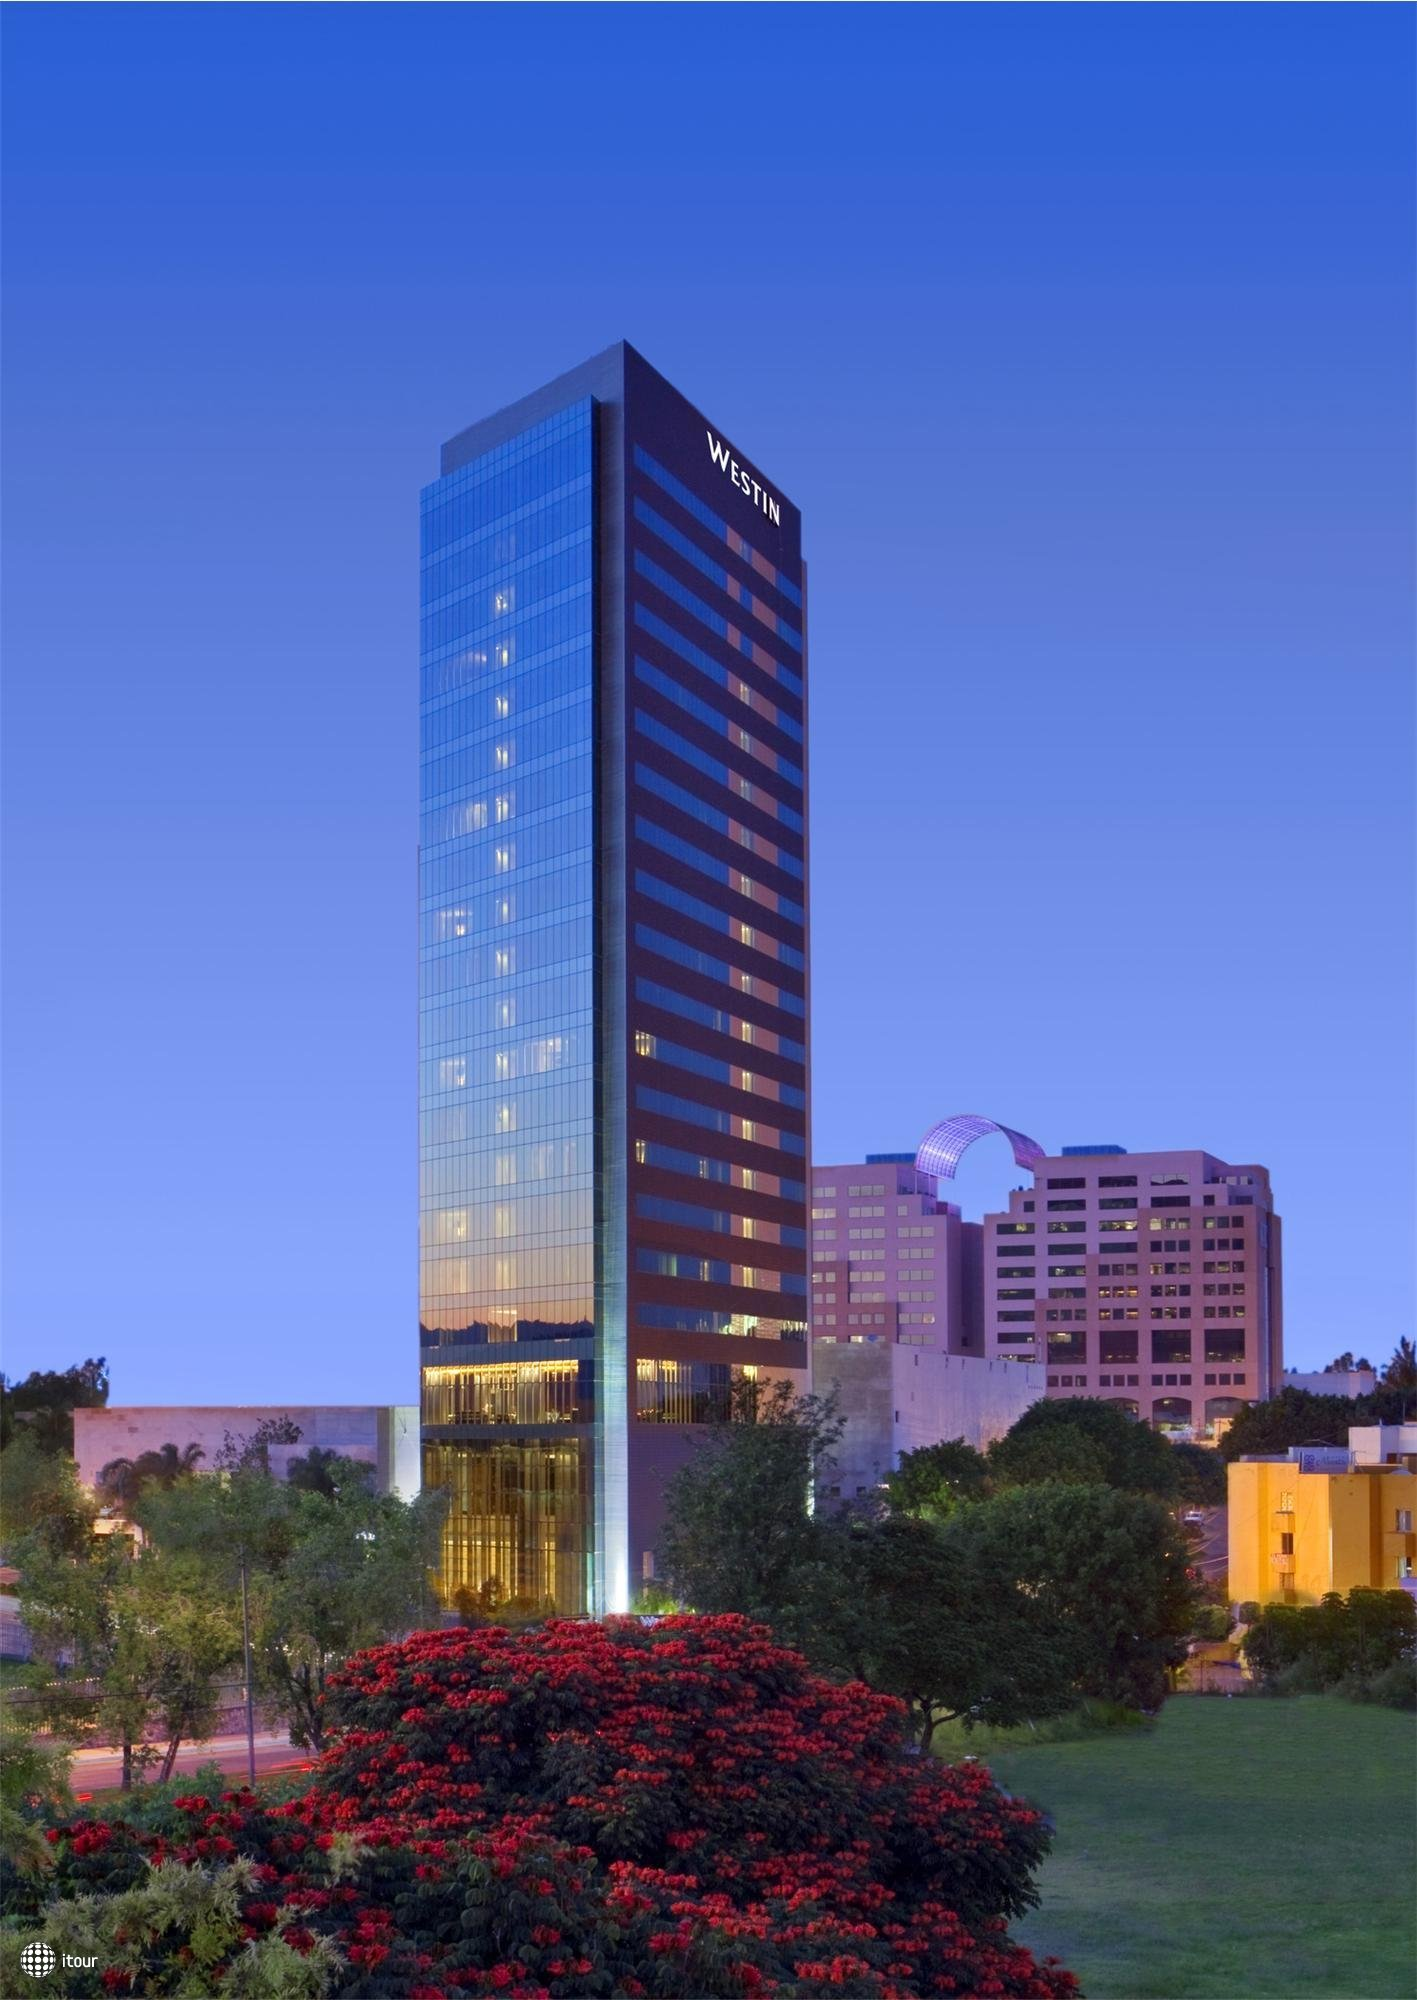 The Westin Guadalajara 2